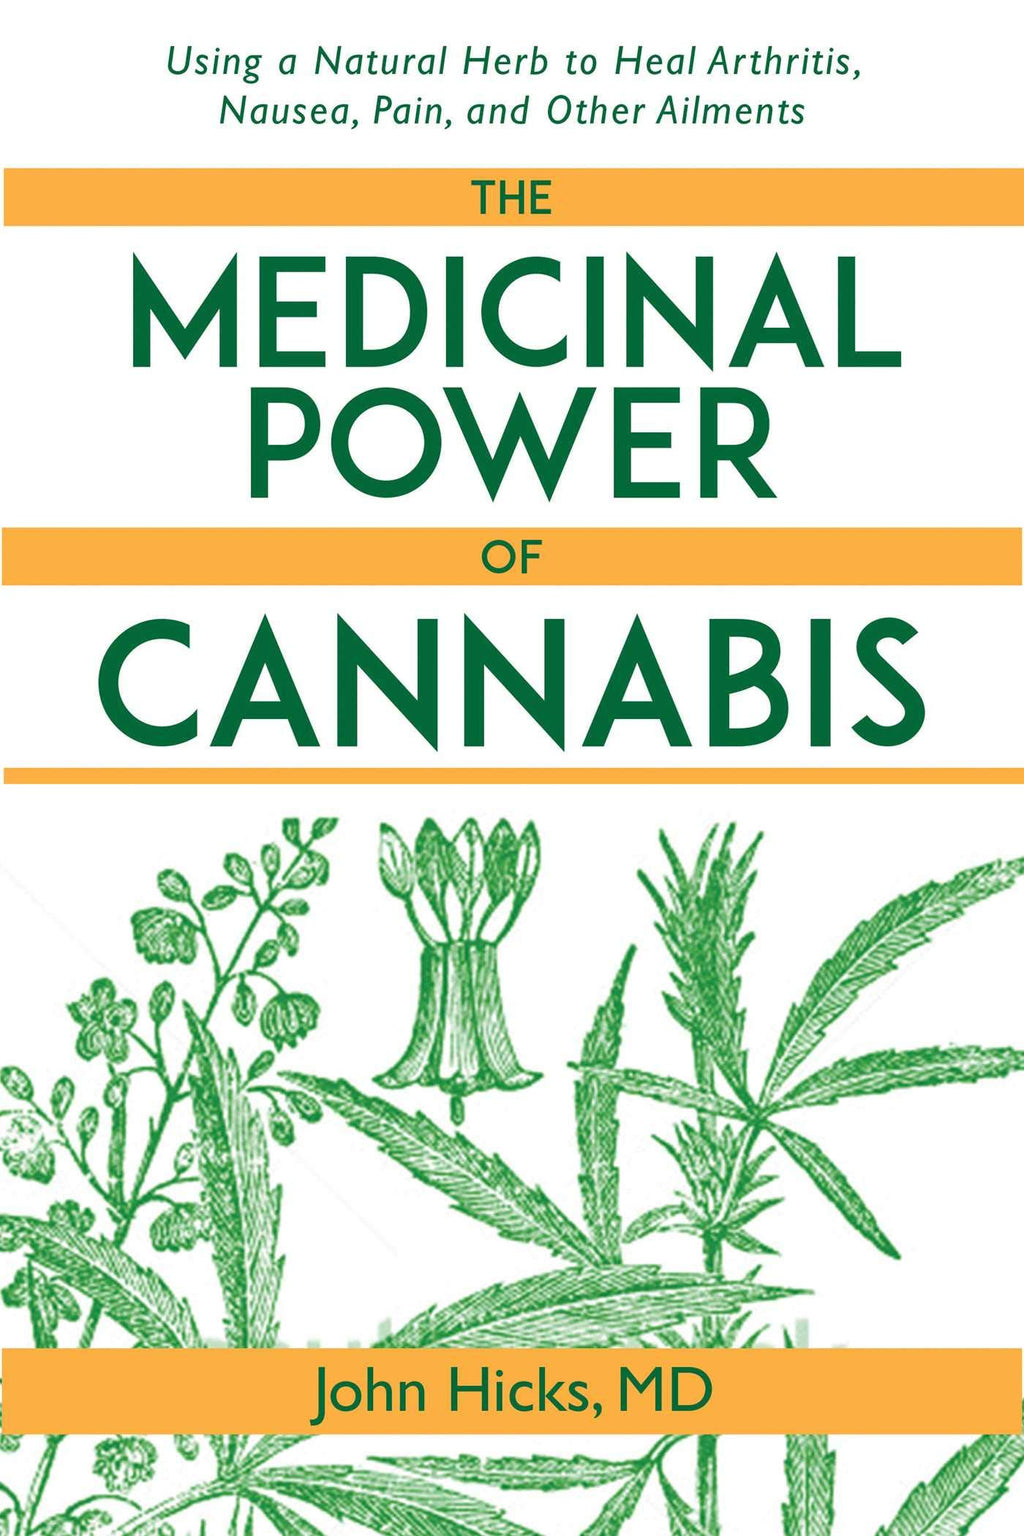 Medicinal Power of Cannabis by John Hicks